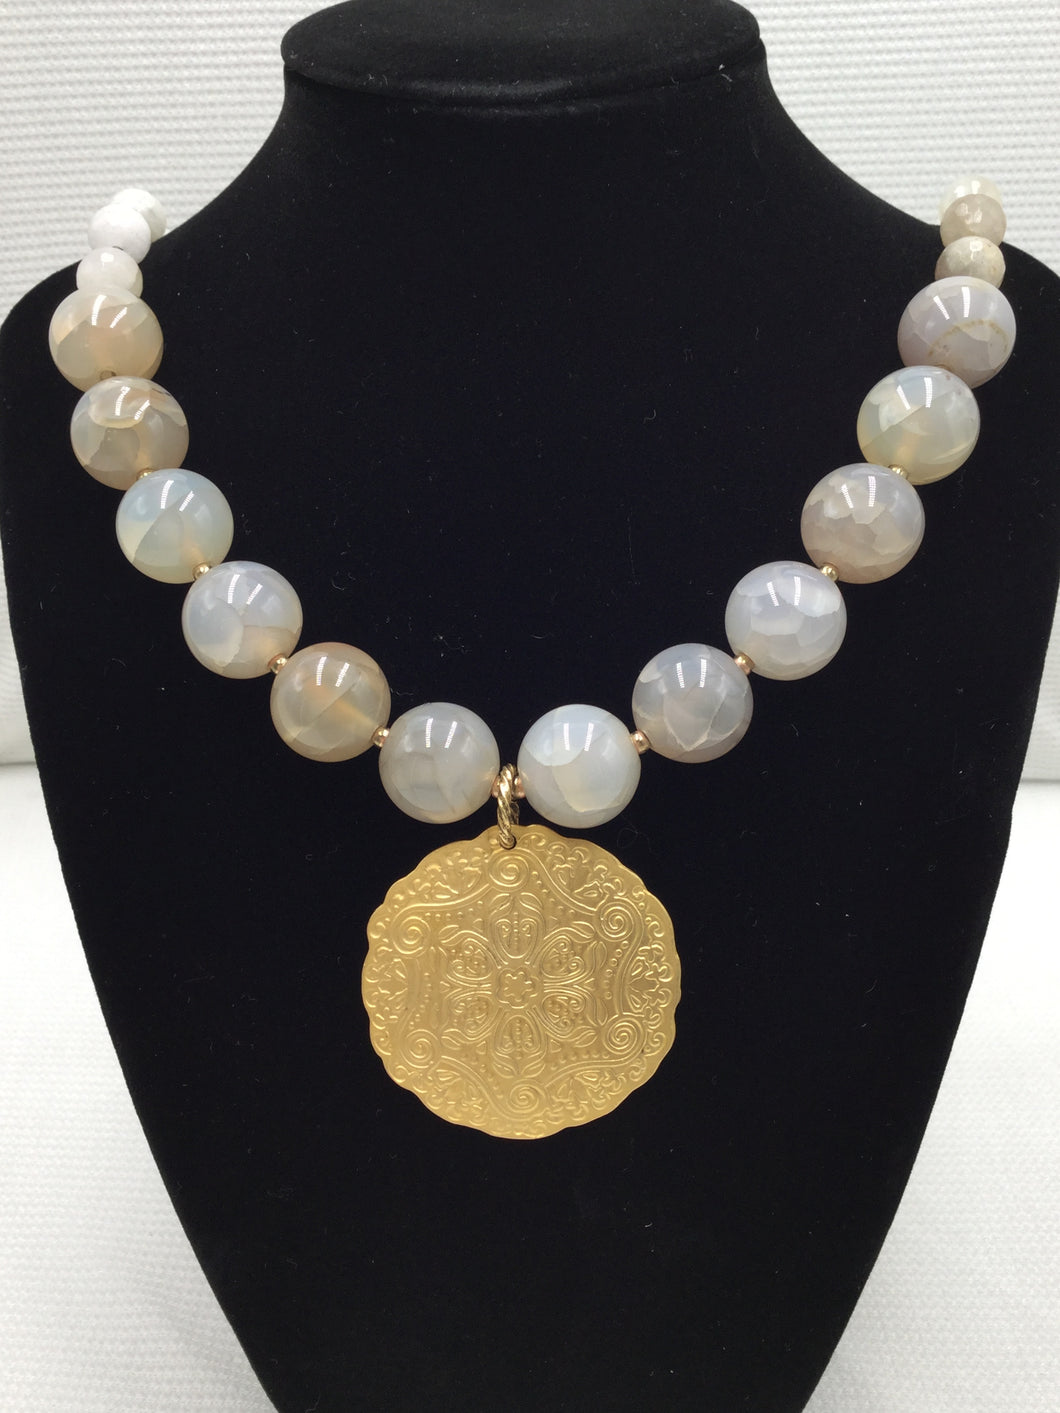 Necklace - Cream Agate with Gold